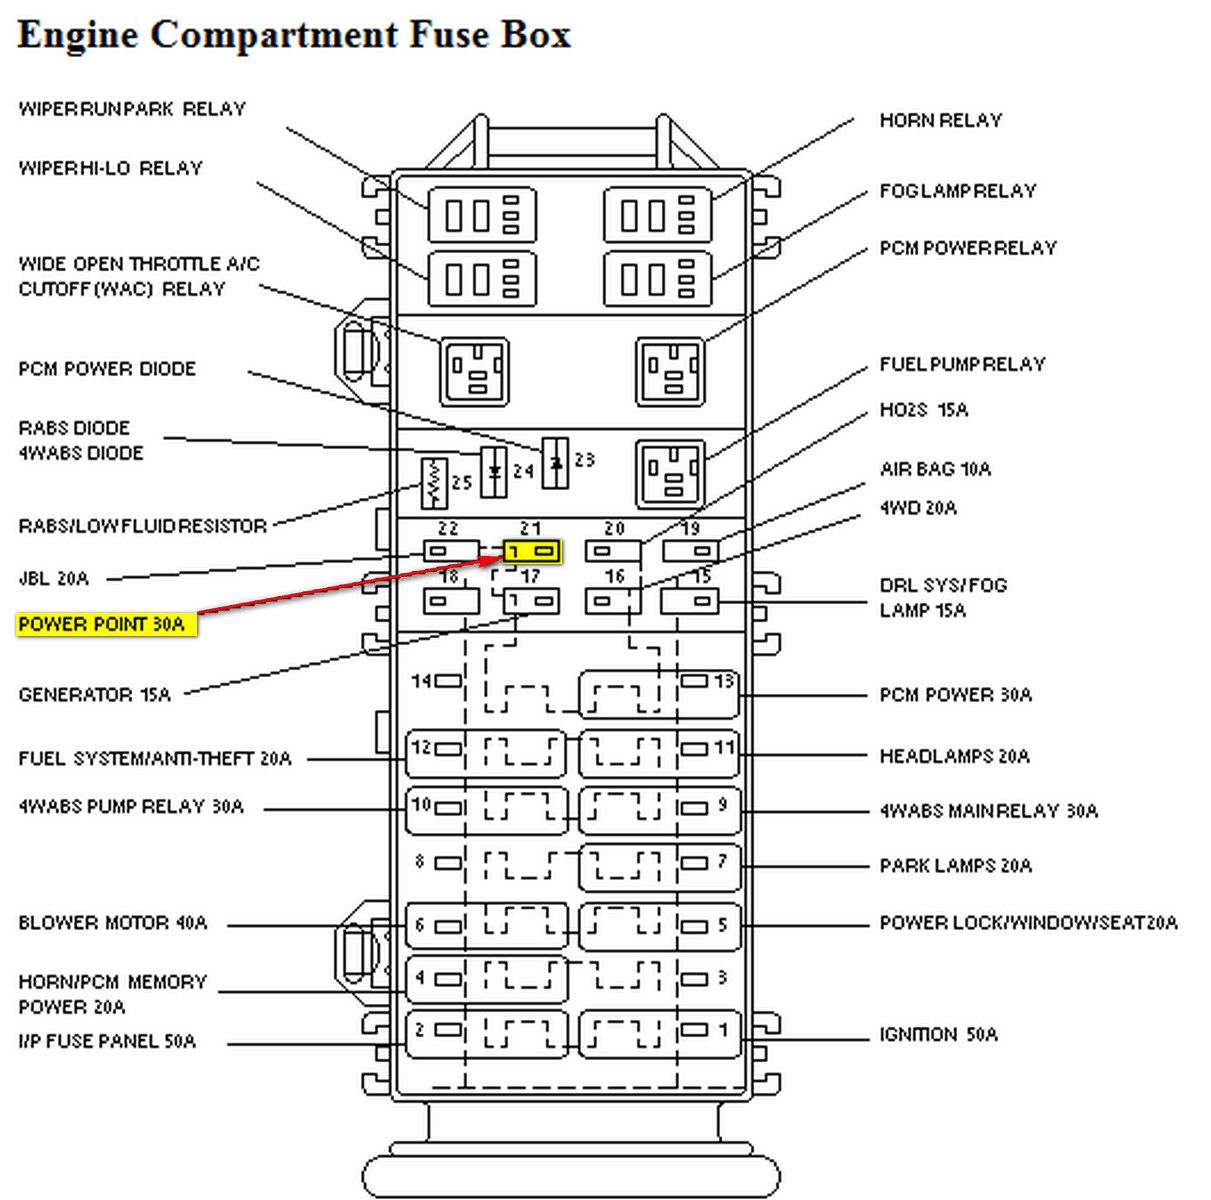 96 ford ranger fuse diagram wiring diagram sheet 2002 ford ranger fuse diagram 1997 ford ranger [ 1211 x 1200 Pixel ]